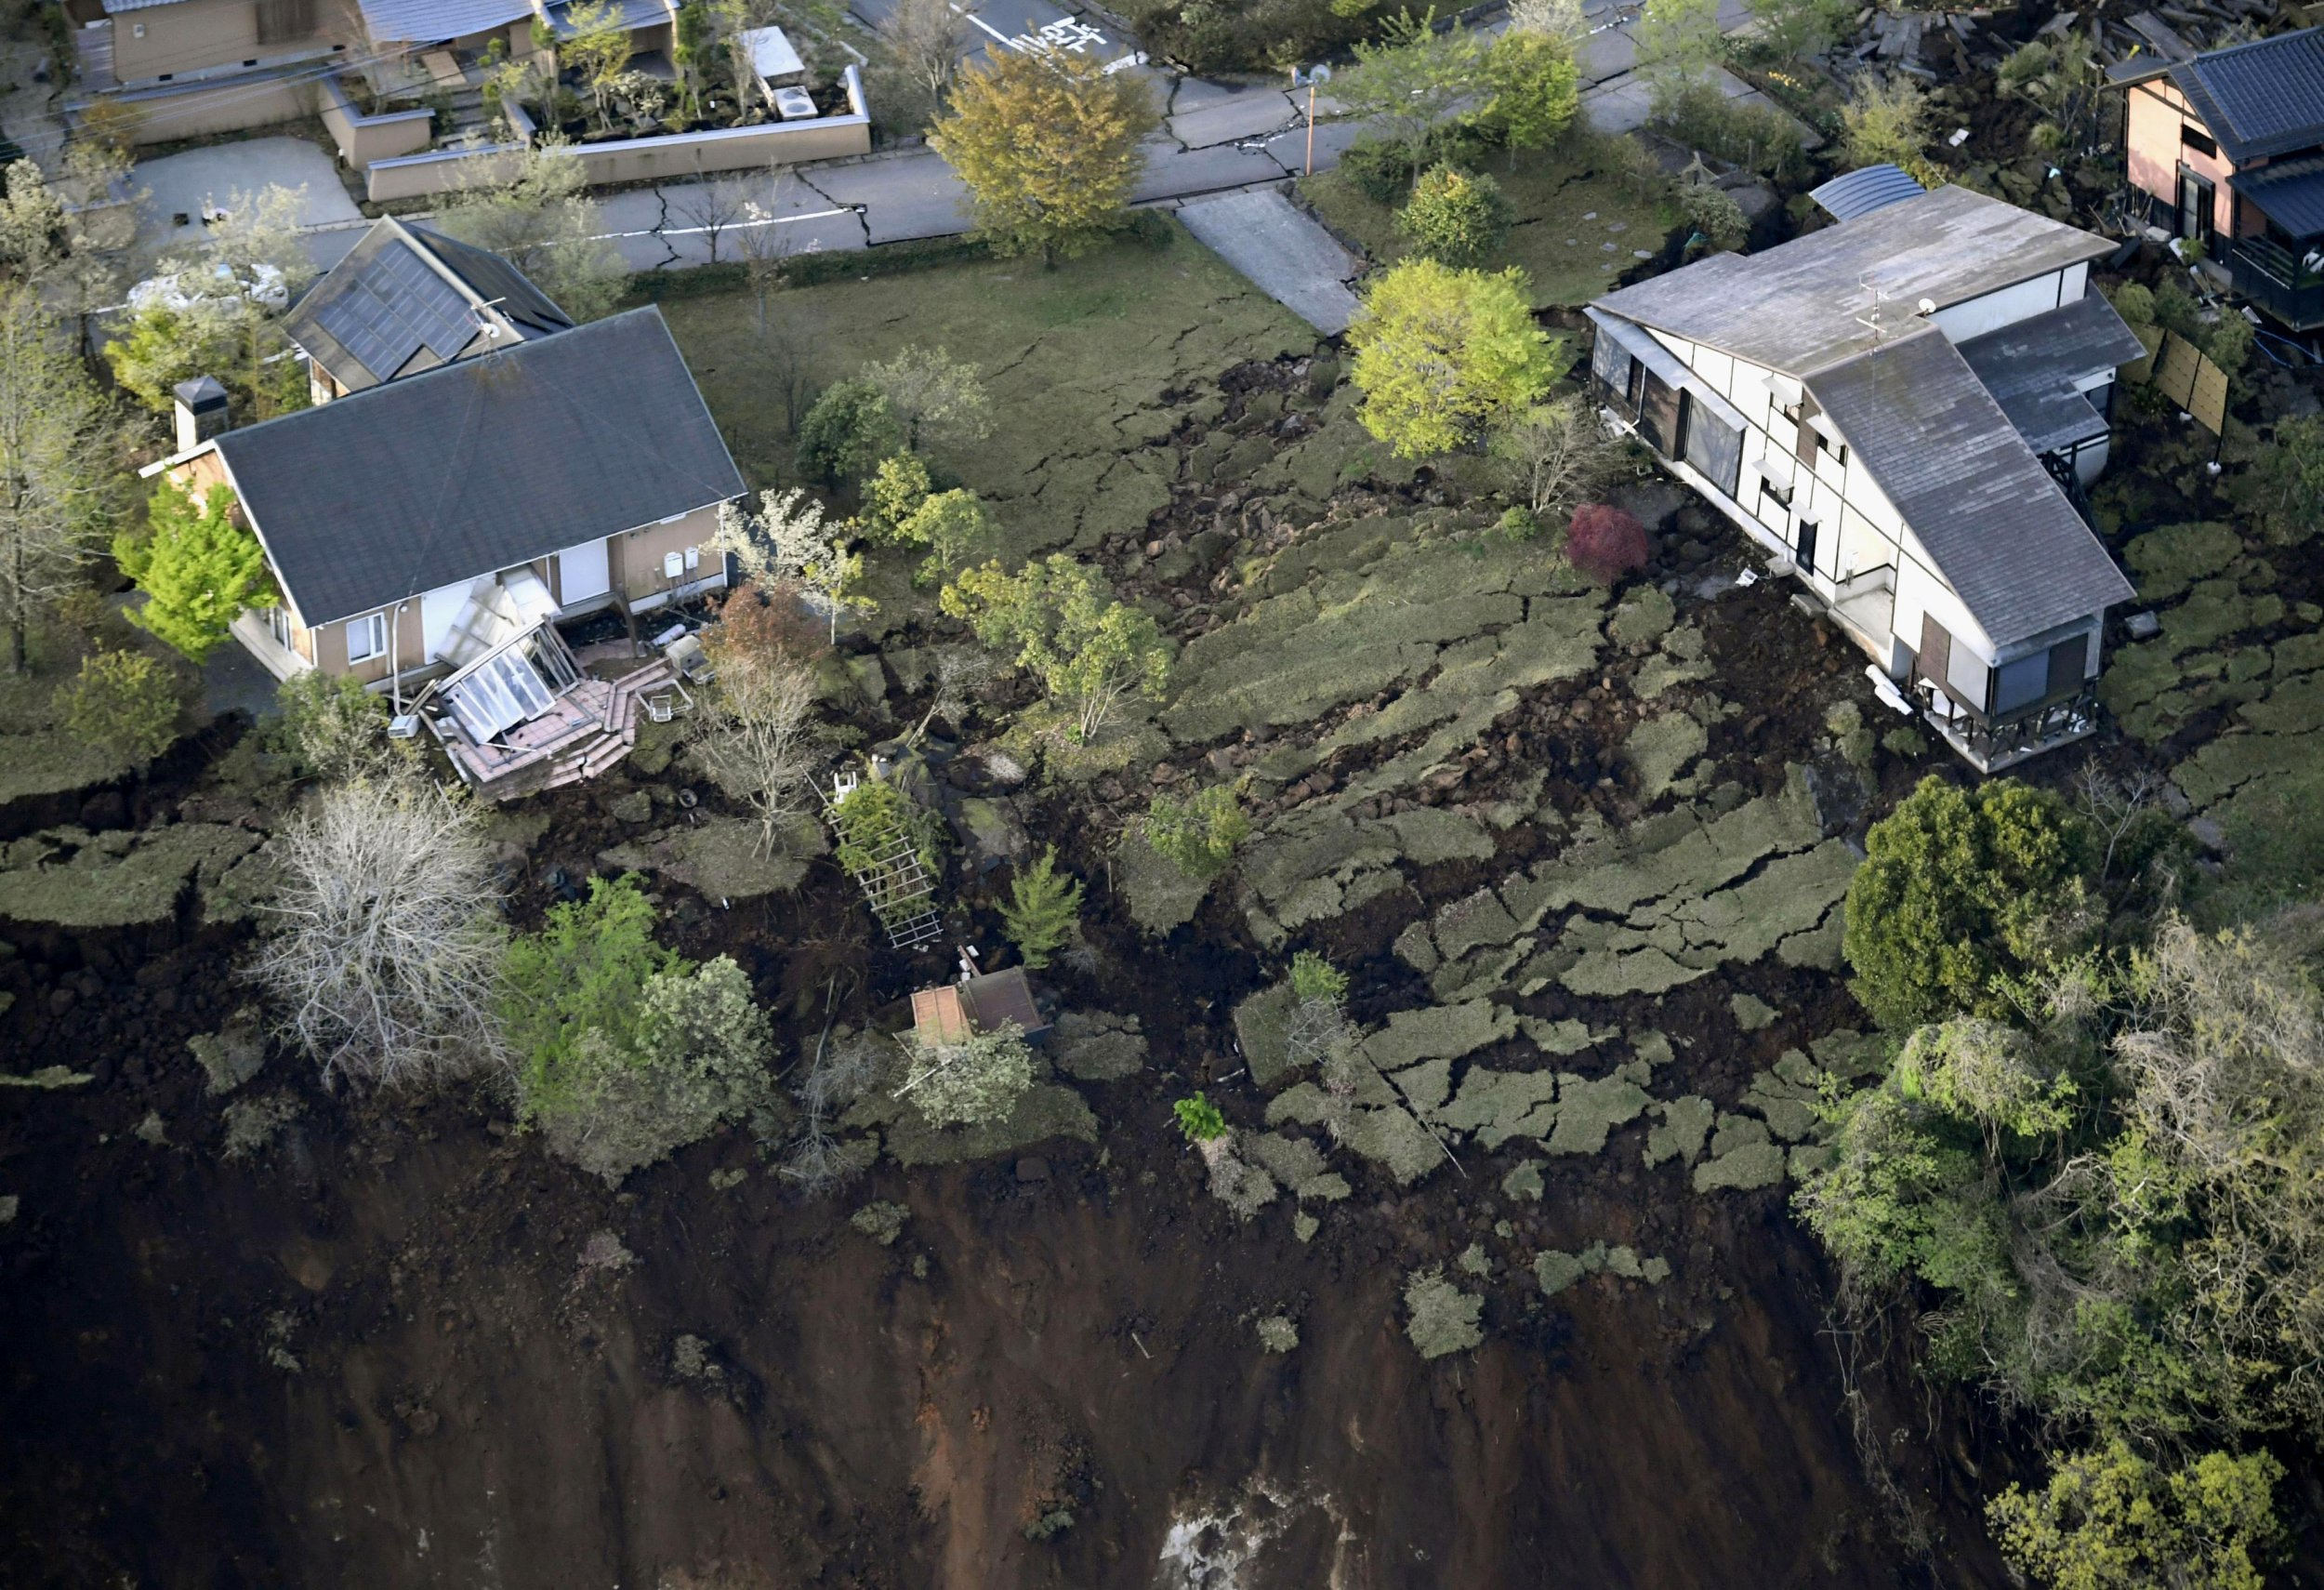 Houses are seen in a landslide-hit area in Minamiaso, Kumamoto prefecture, southern Japan Saturday, April 16, 2016. A powerful earthquake struck southern Japan early Saturday, barely 24 hours after a smaller quake hit the same region. (Kyodo News via AP) JAPAN OUT, MANDATORY CREDIT